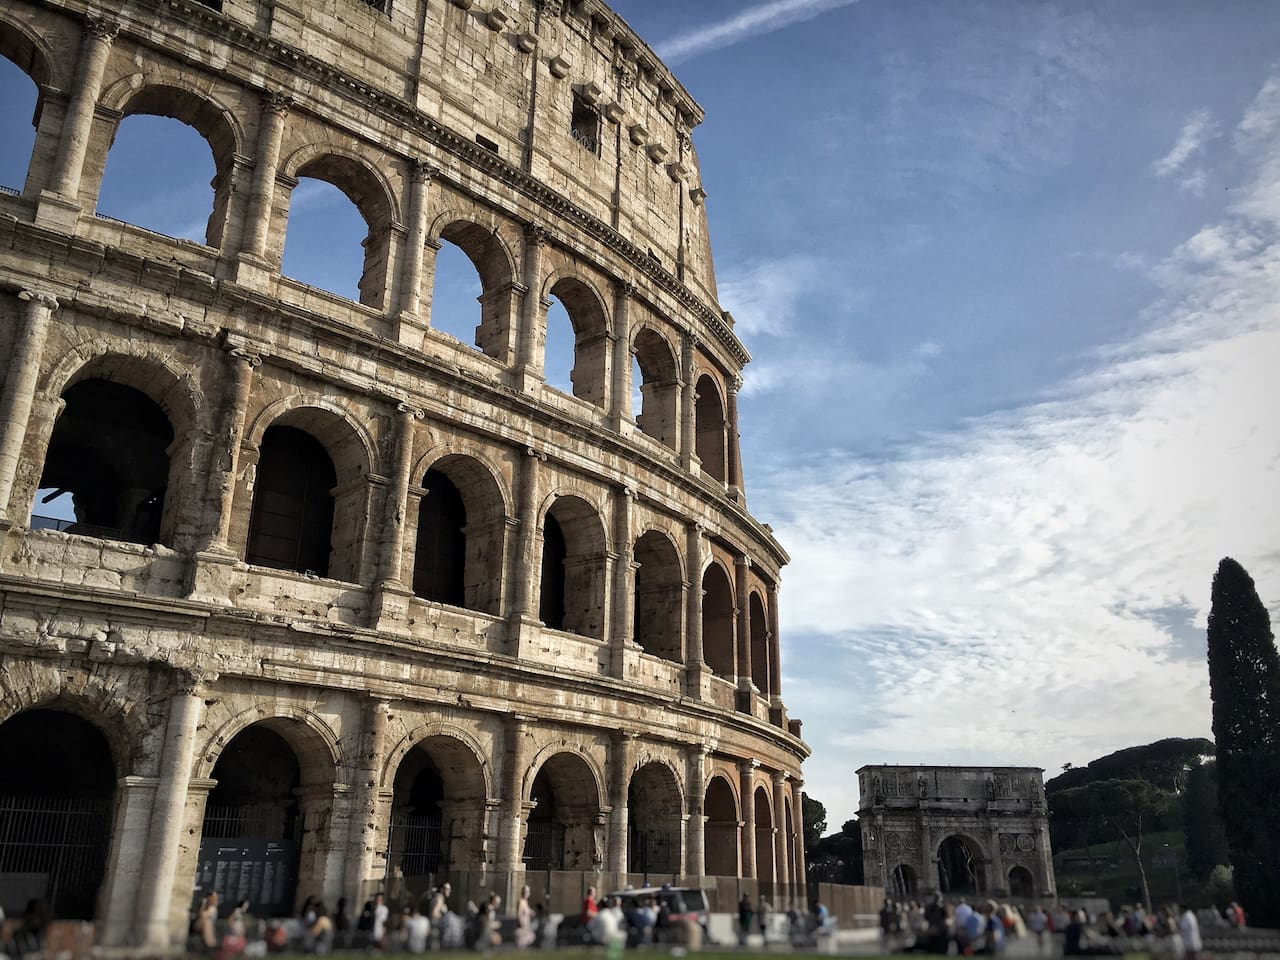 10 minutes walking distance to Colosseum